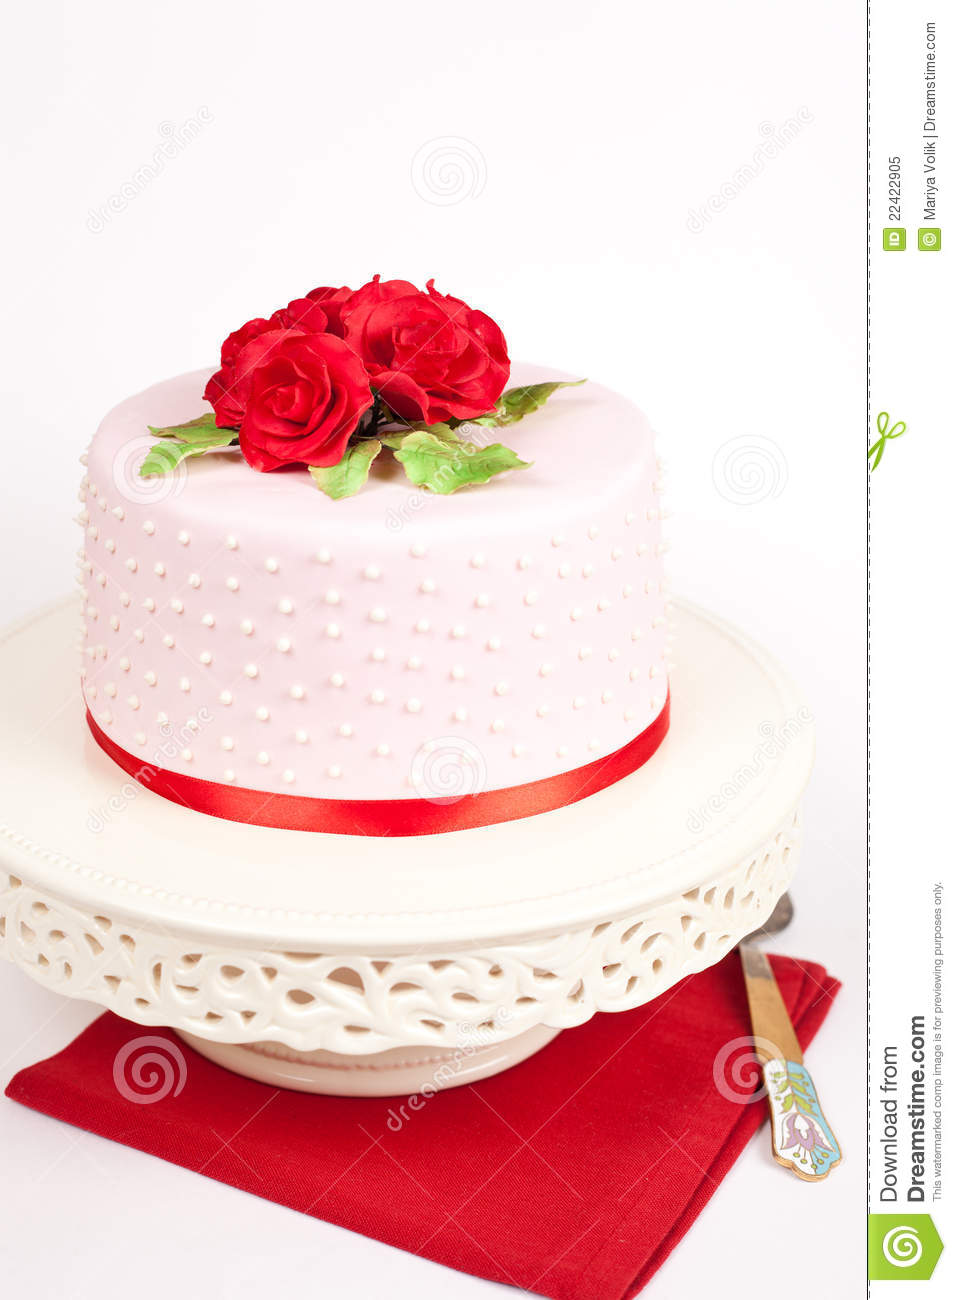 Spotted Cake With Red Roses Stock Image - Image of wedding, flowers ...